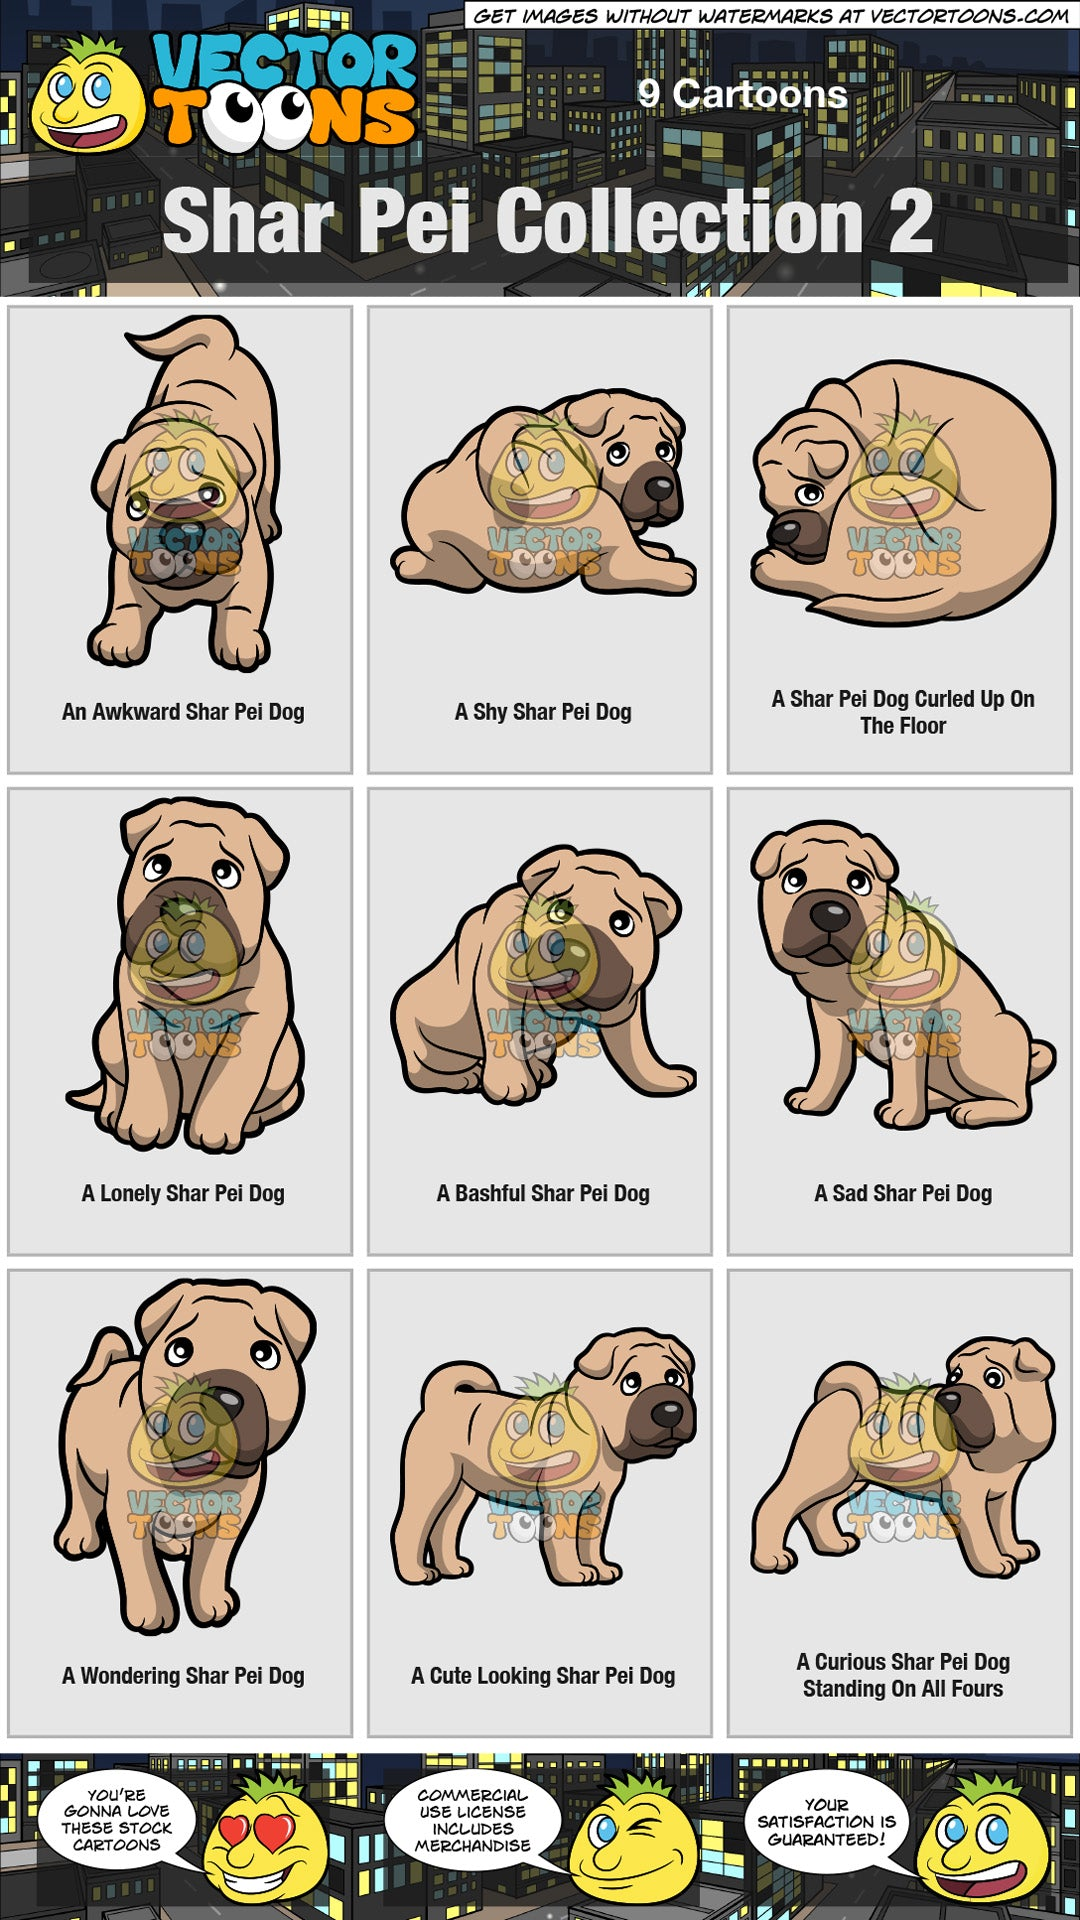 Shar Pei Collection 2